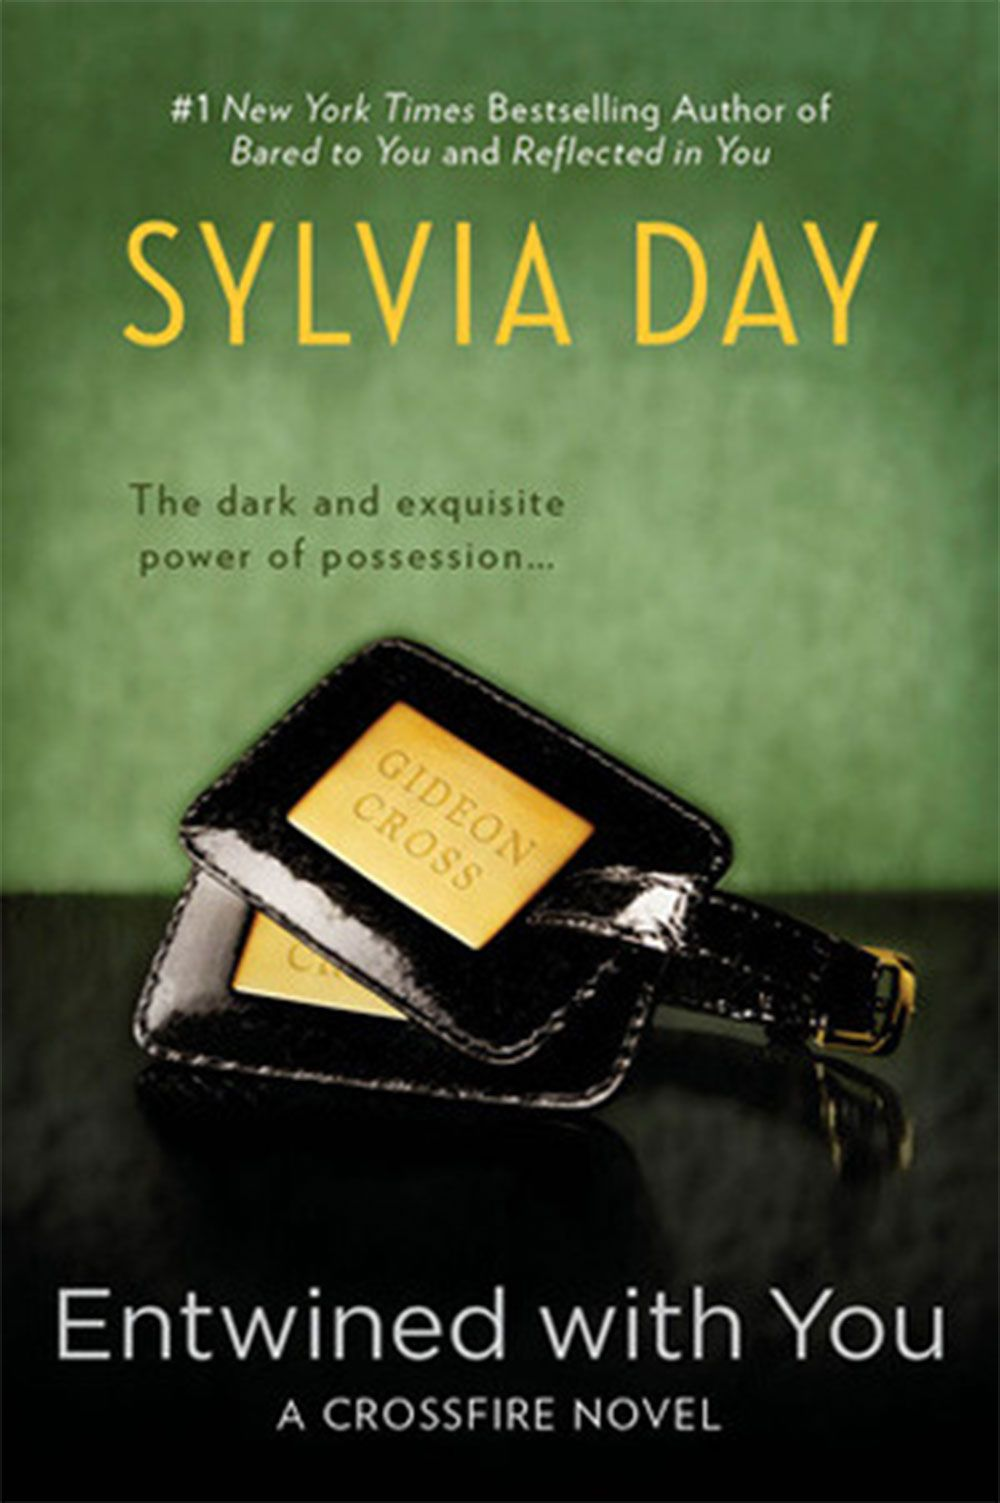 Book review up on the blog sylvia day crossfire book